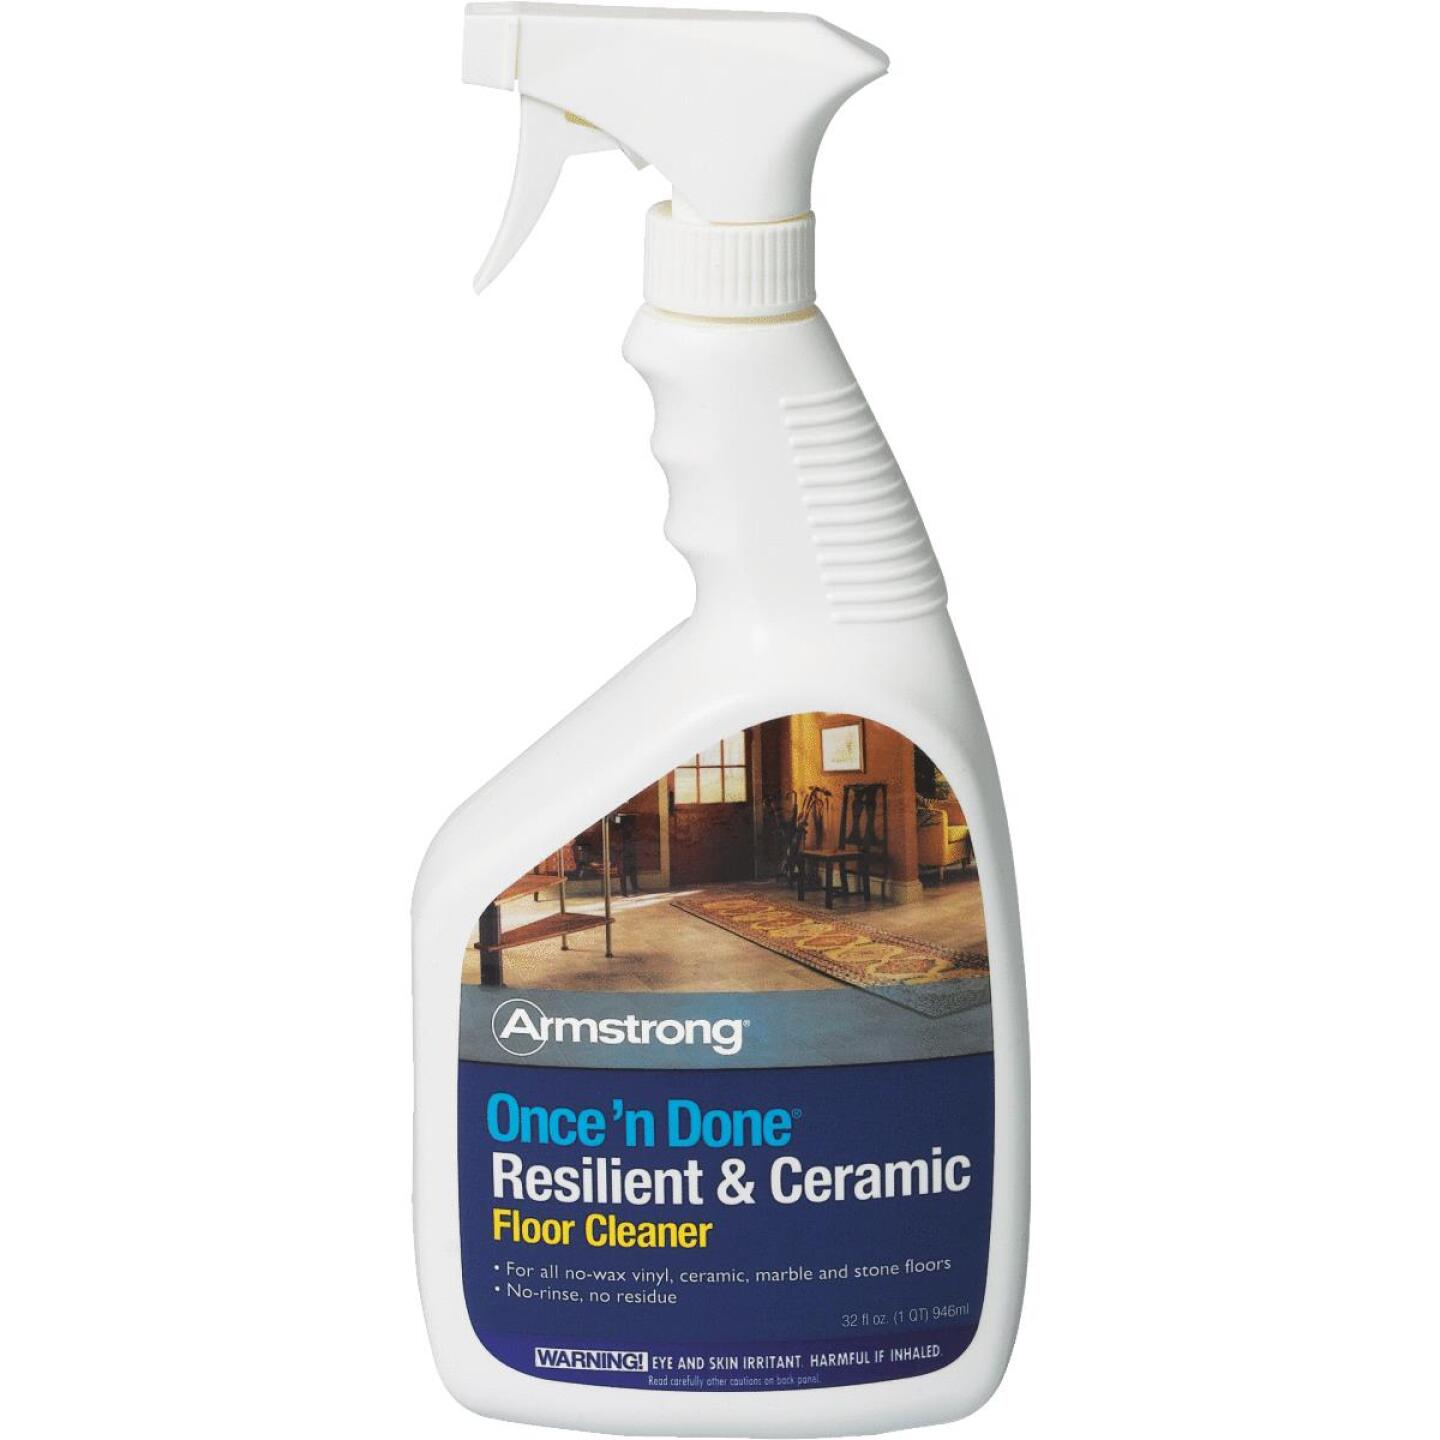 Armstrong Flooring Once 'N Done 32 Oz. Ready-To-Use Resilient & Ceramic Floor Cleaner Spray Image 1